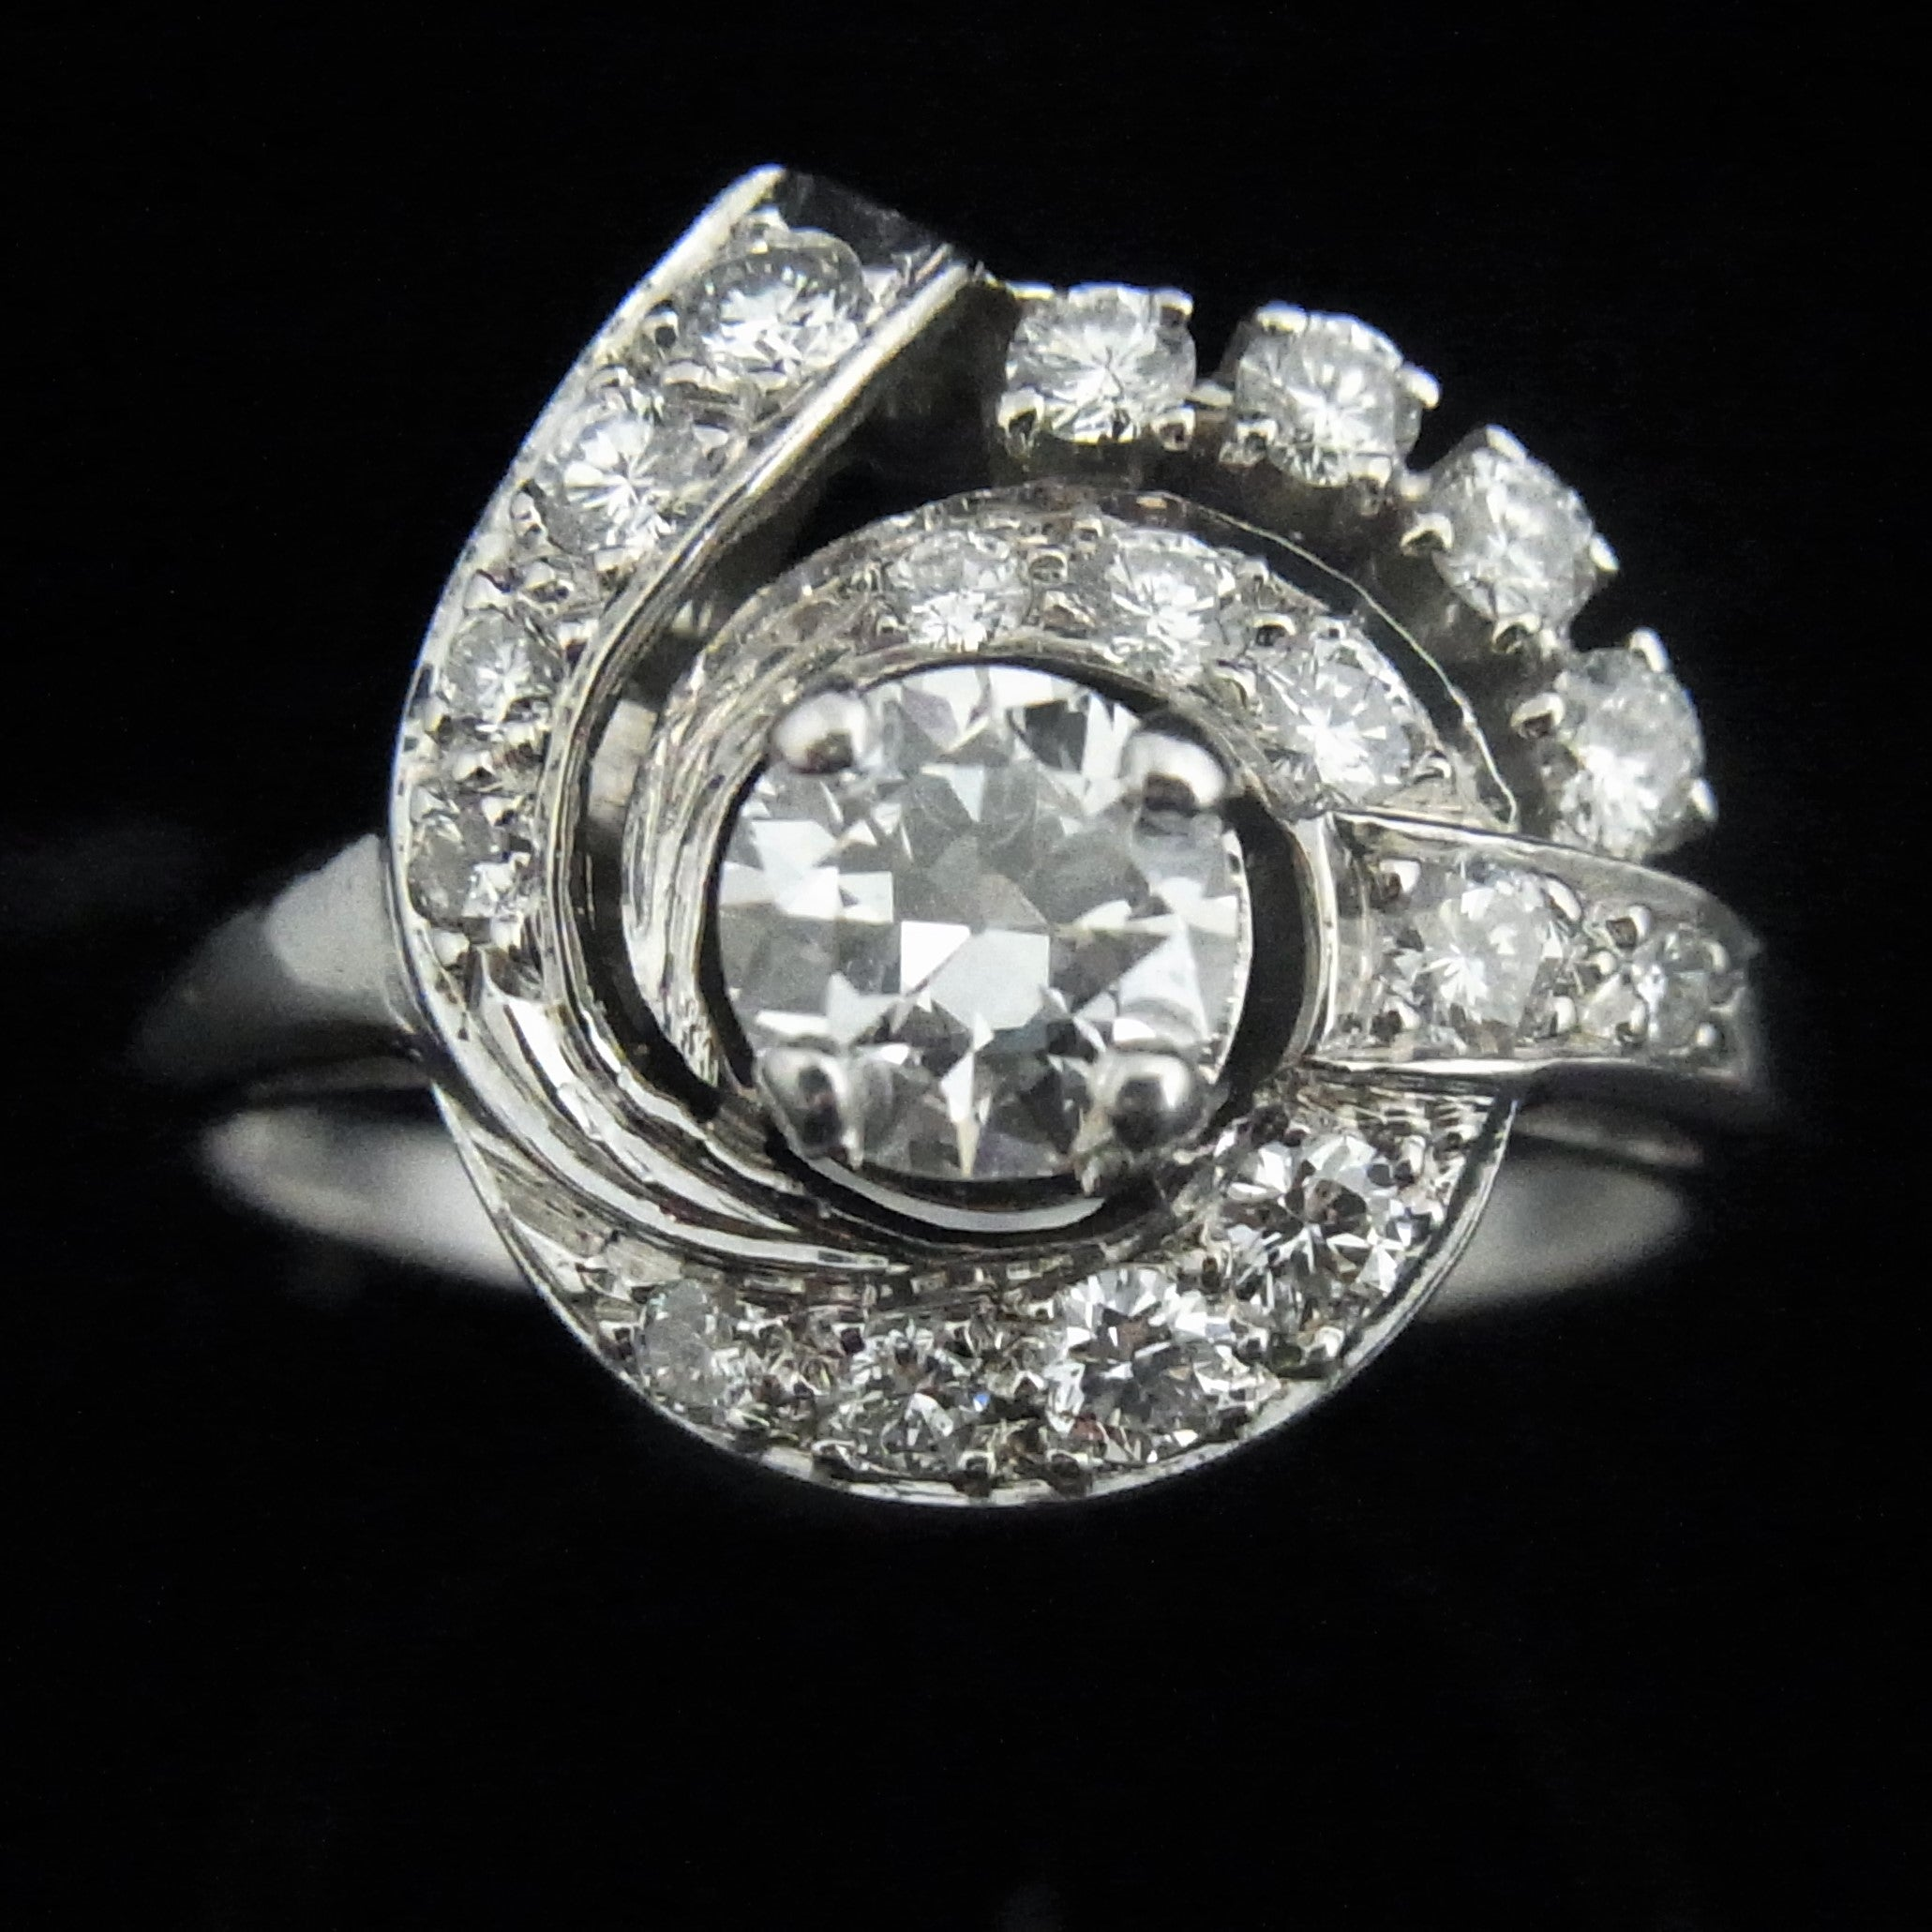 diamond baguettes estate with platinum ring upon once products flower a in